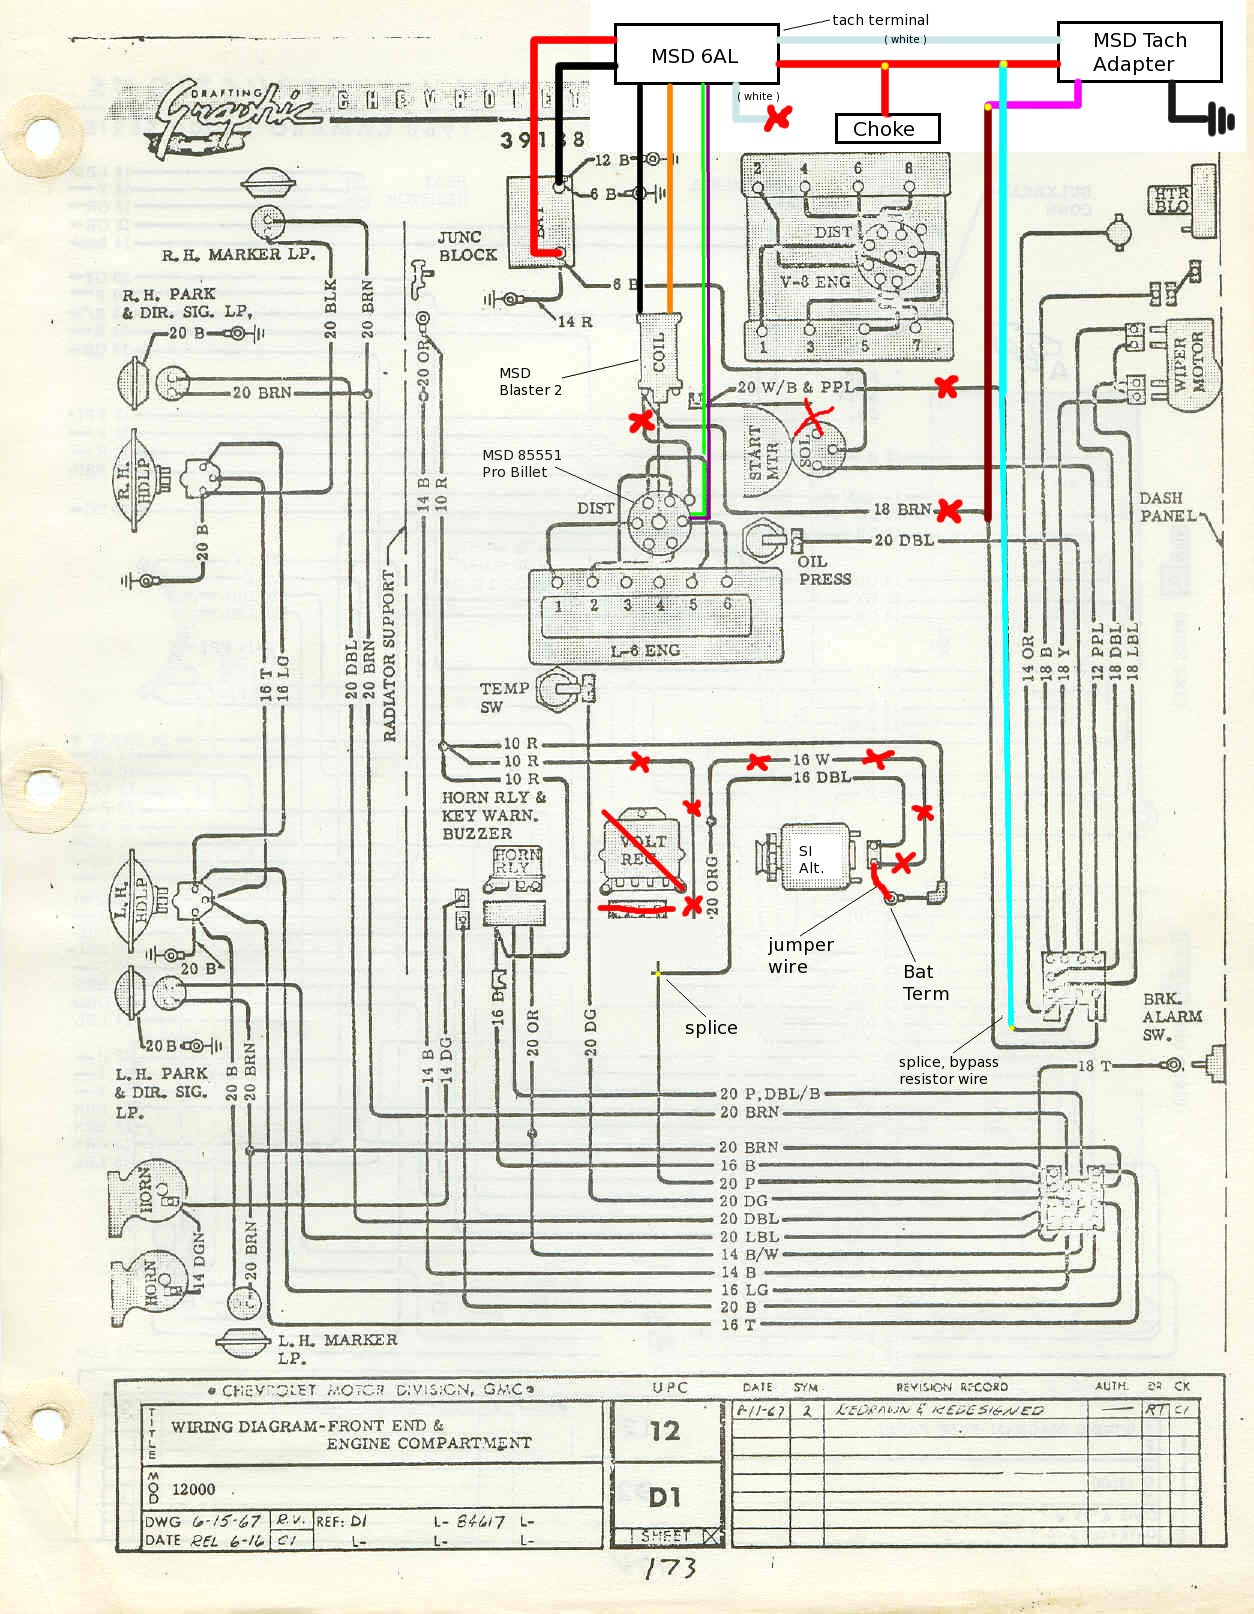 1965 olds 442 wiring diagram best wiring library